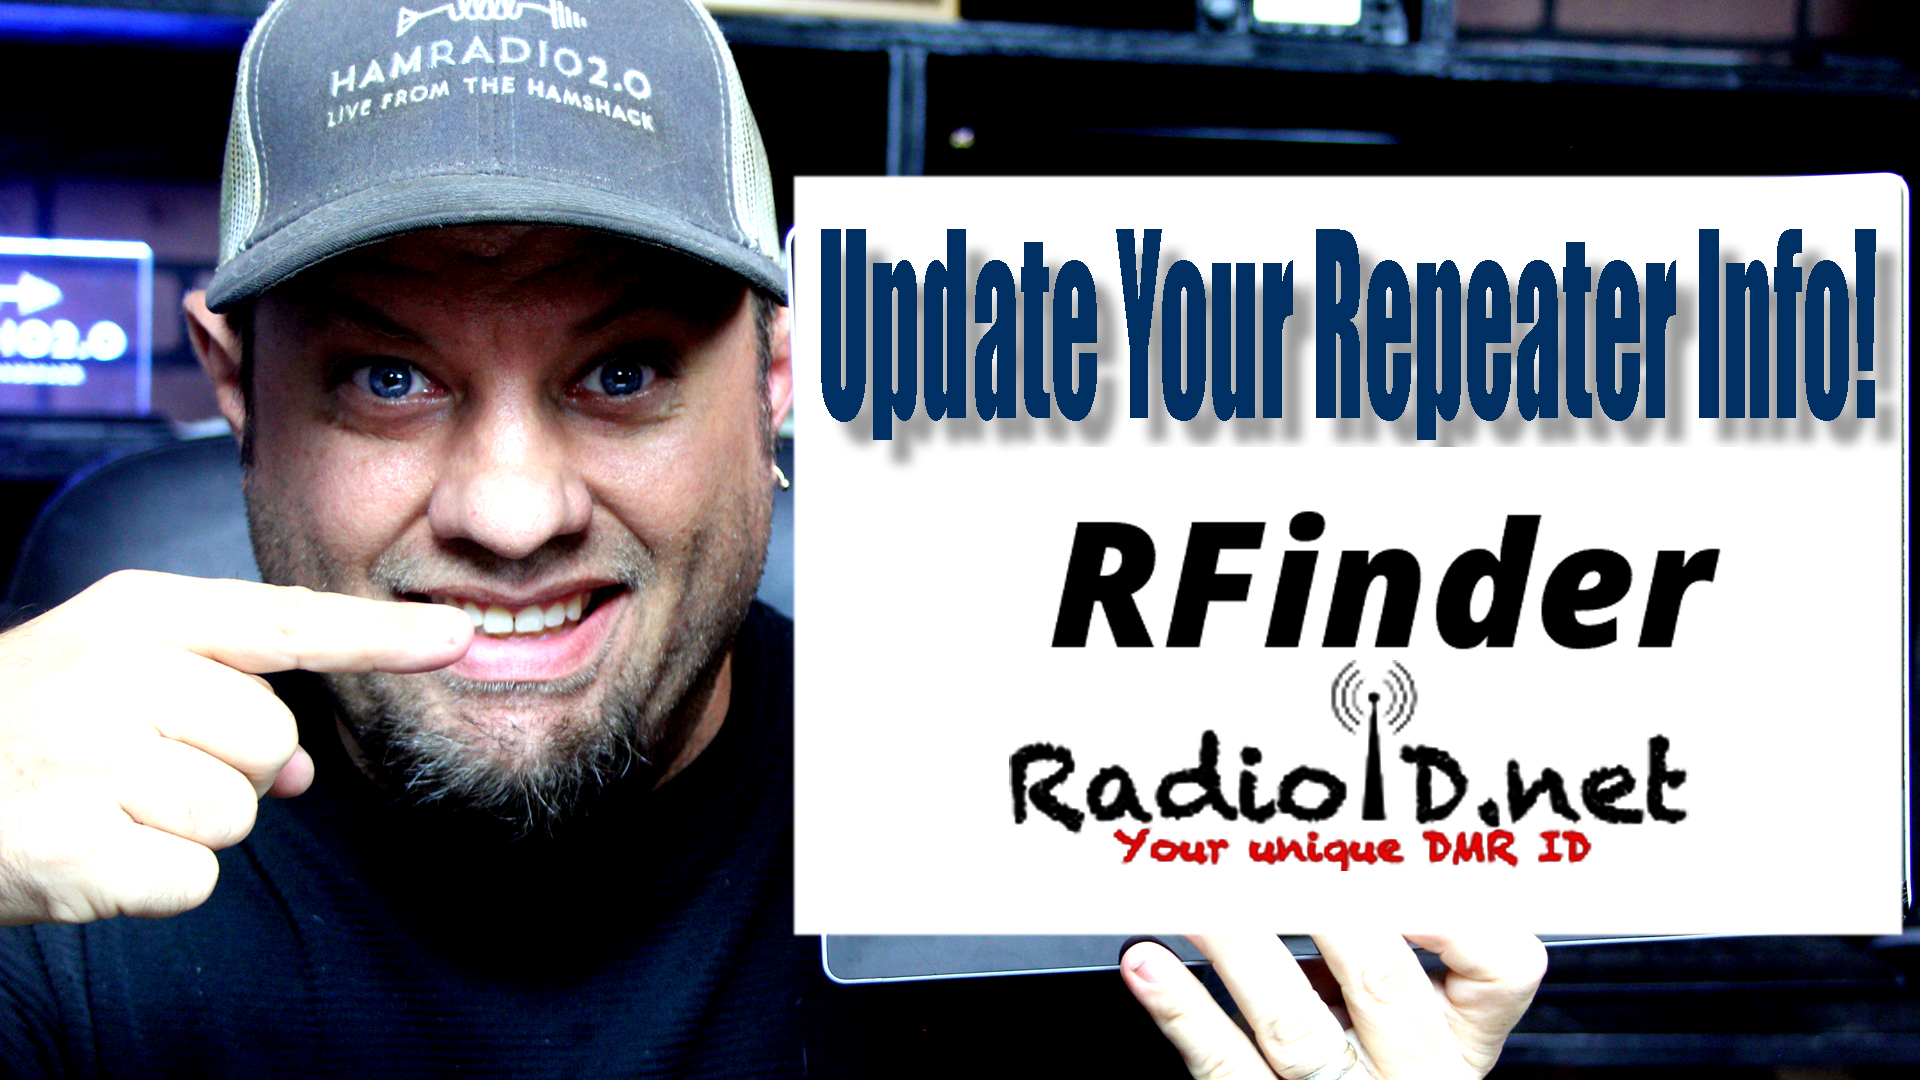 Episode 328: RFinder and RadioID.net Repeater Sync Instructions